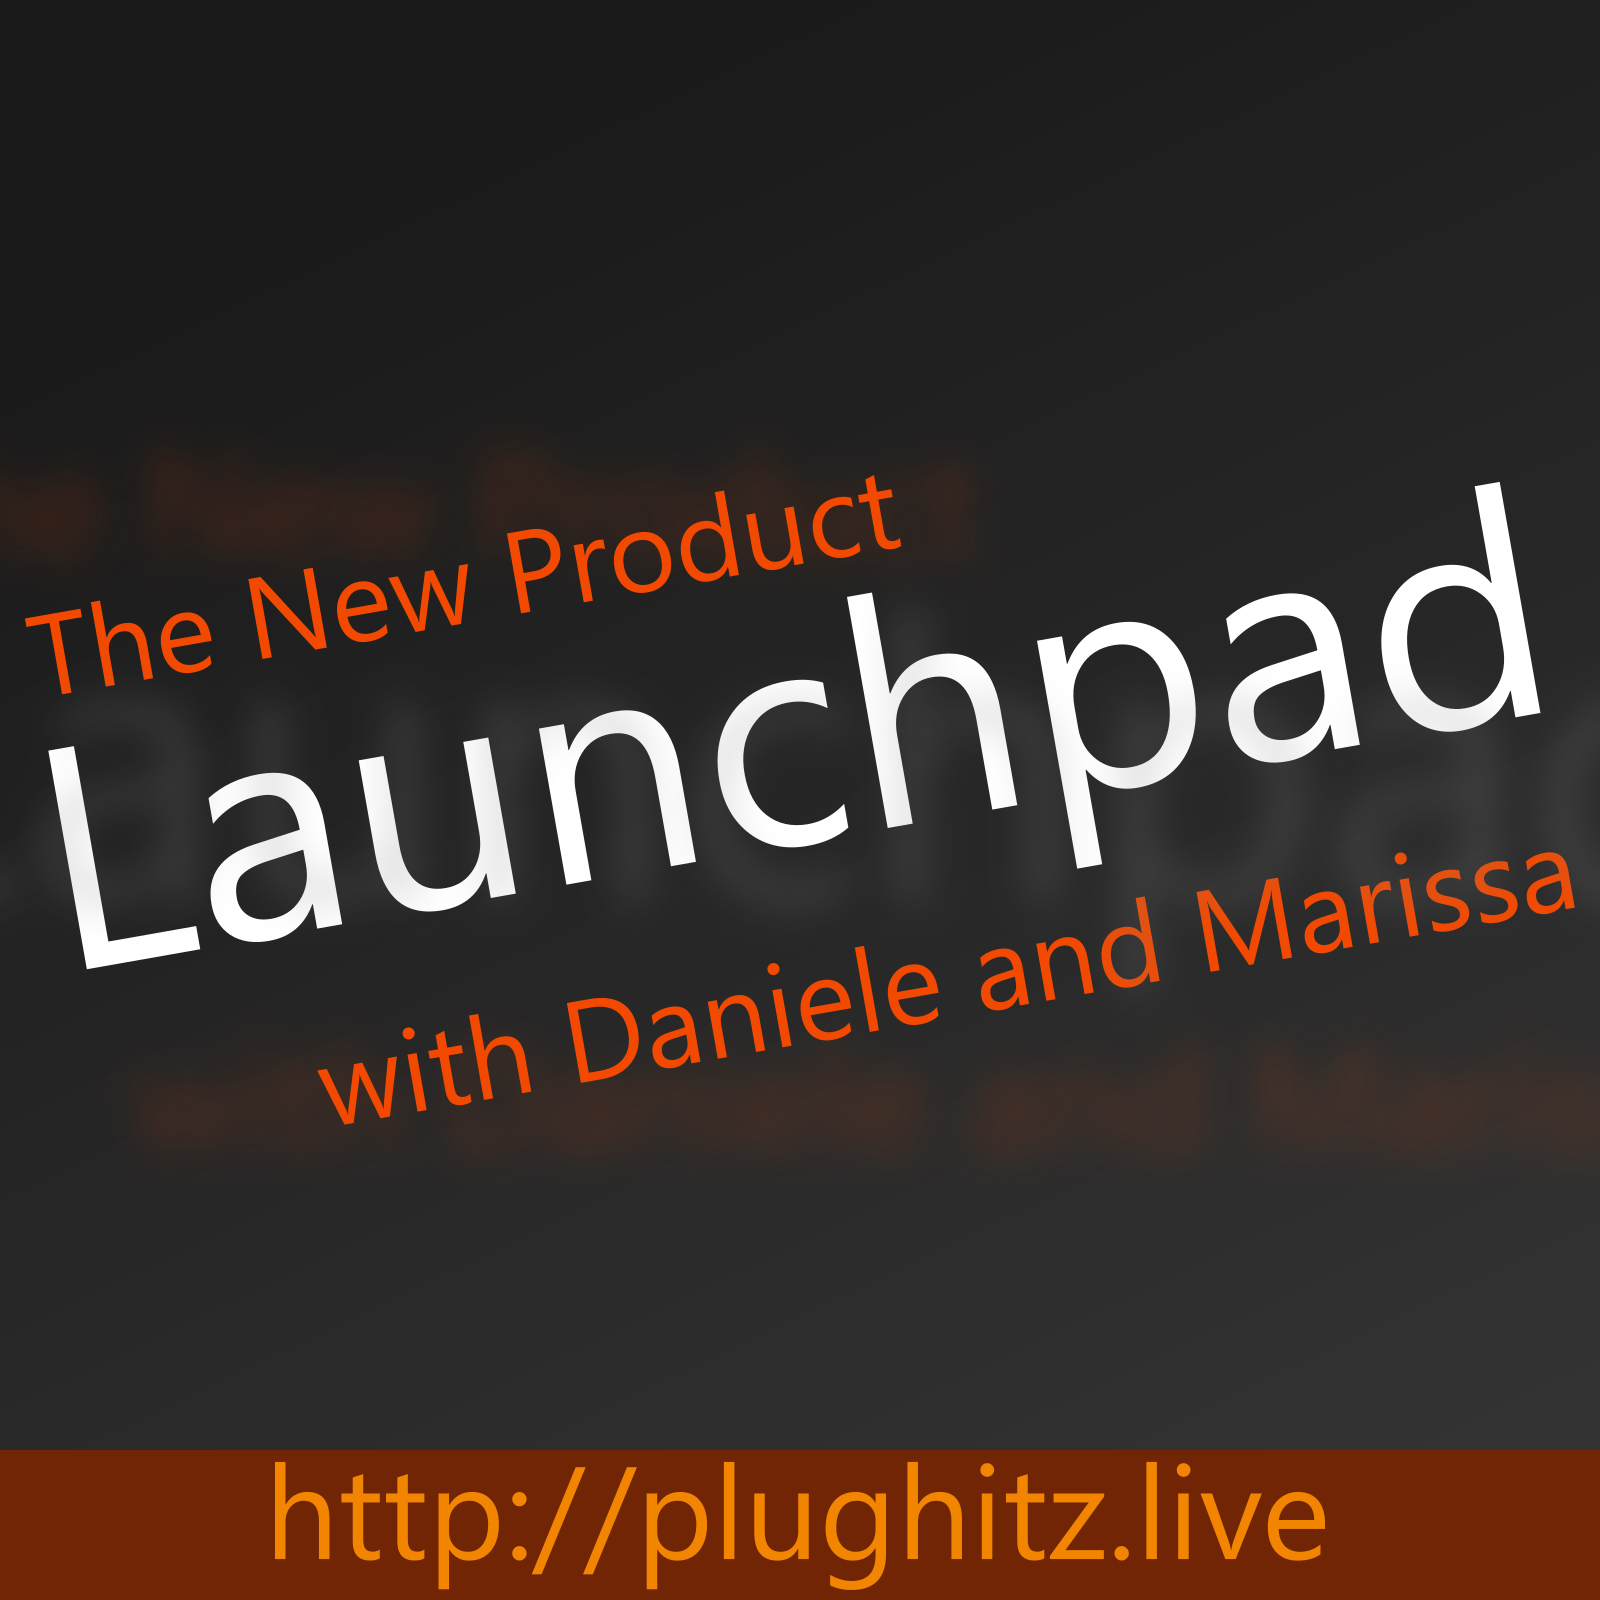 The New Product Launchpad (Video)